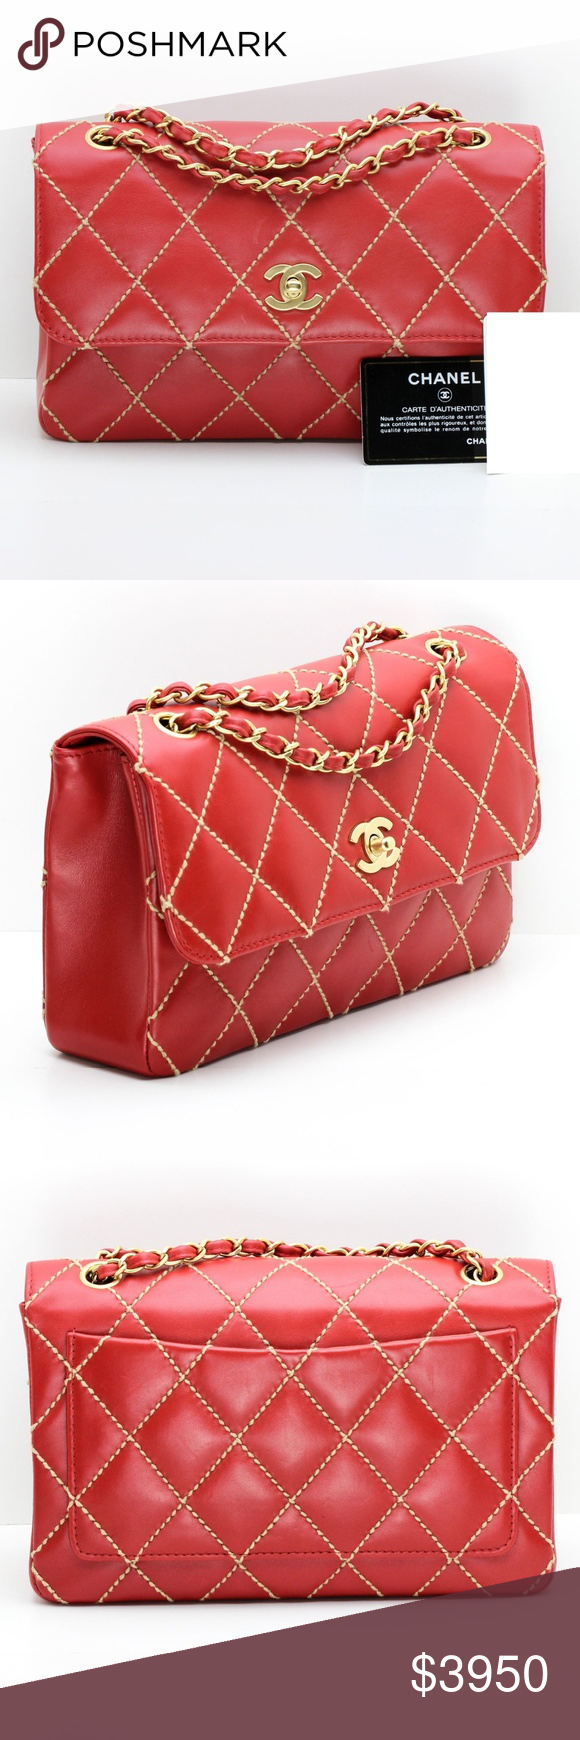 a0931361bc8f Chanel Medium Classic Quilted Flap Bag Red Chanel quilted flap bag in  smooth red leather with